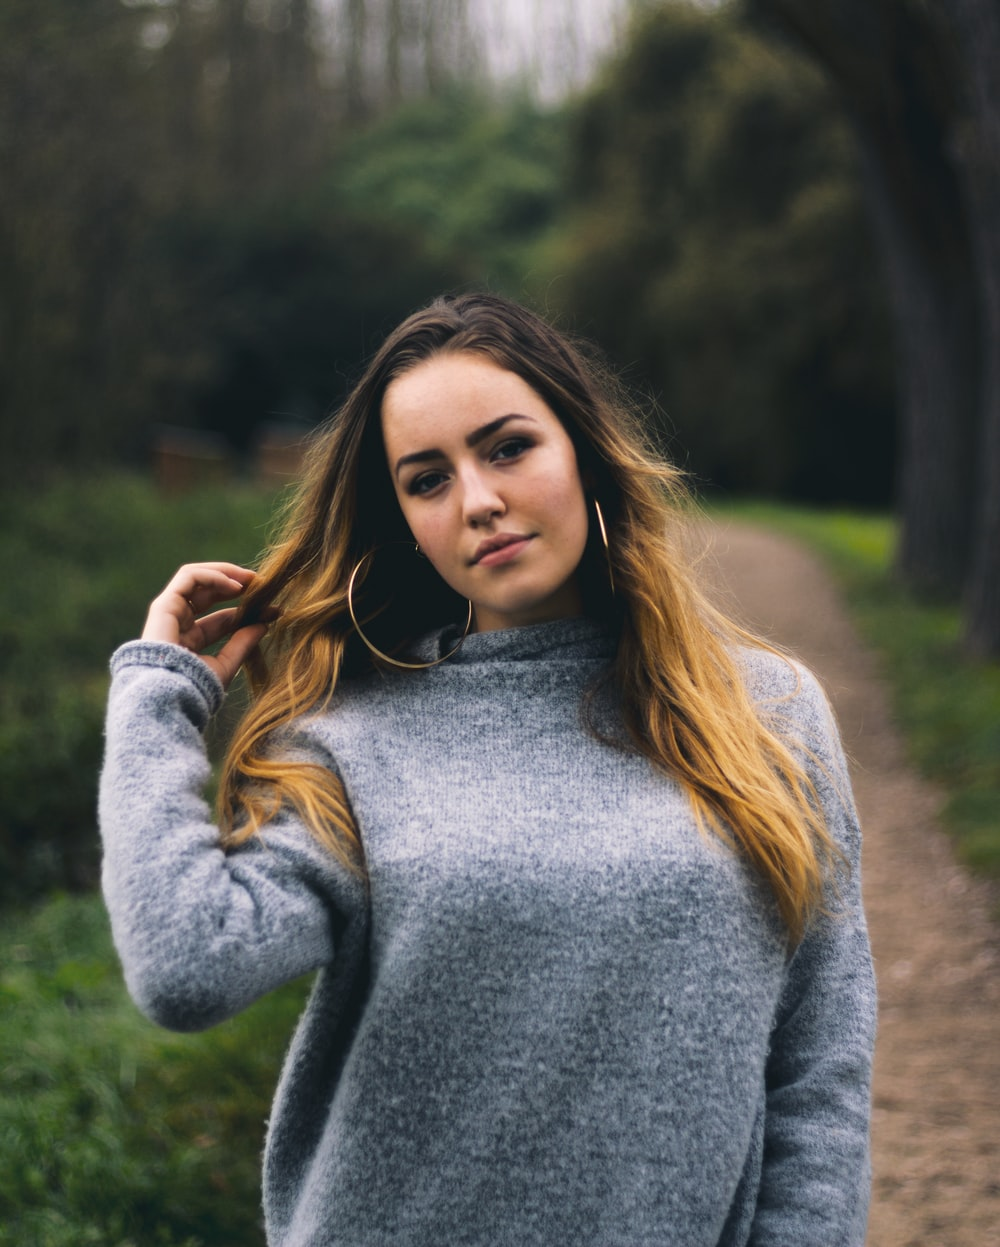 woman wearing gray knit sweater holding her hair